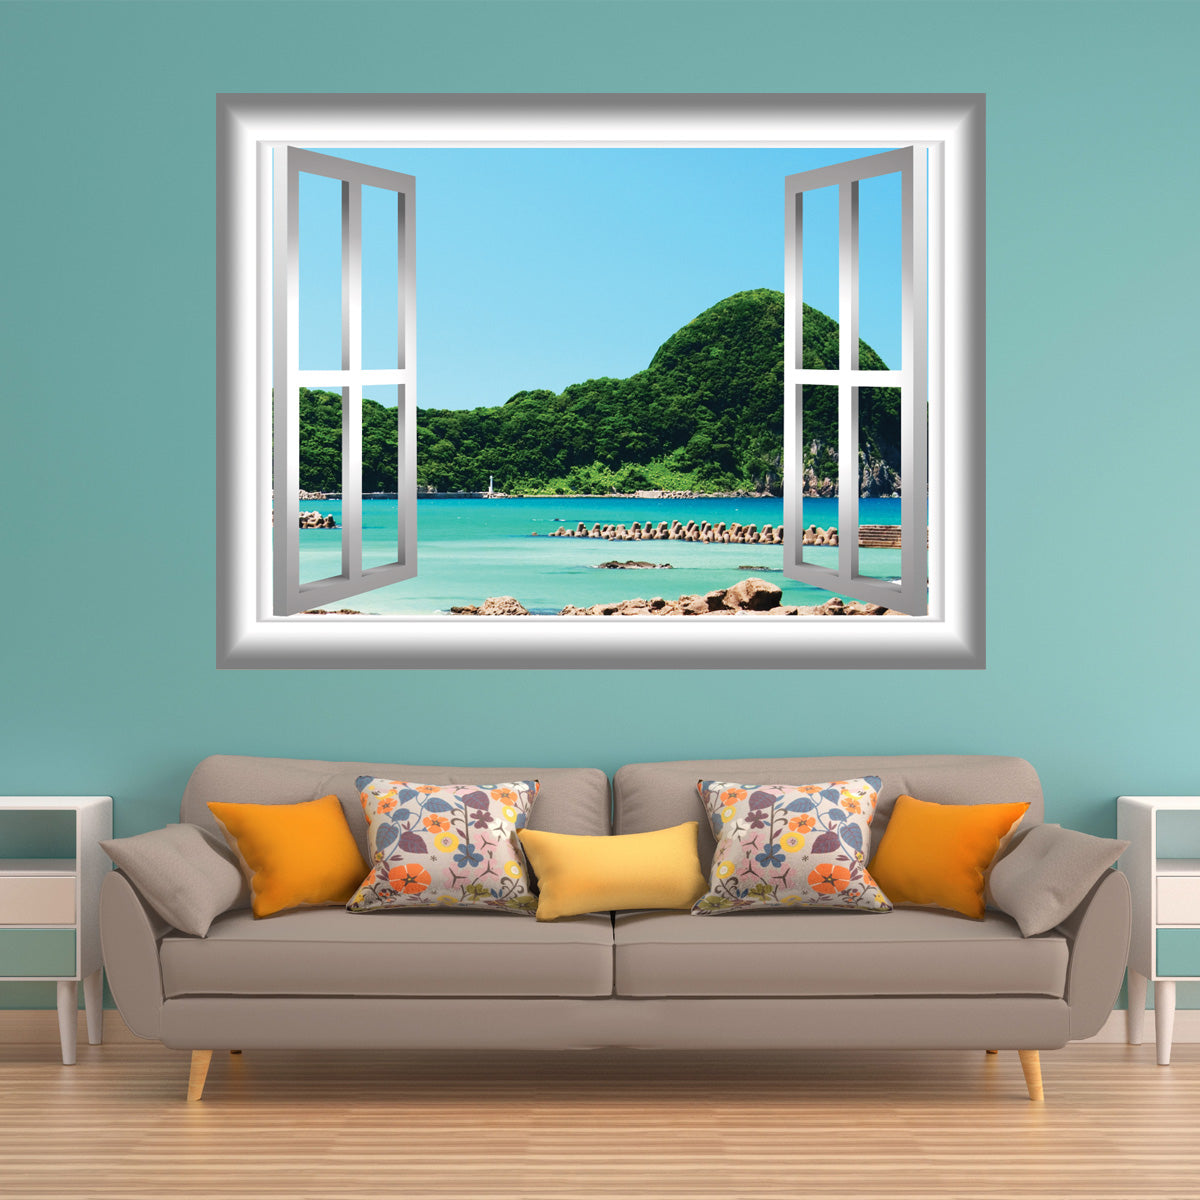 VWAQ Peel and Stick Beach Lagoon with Trees View Window Frame Vinyl Wall Decal - GJ90